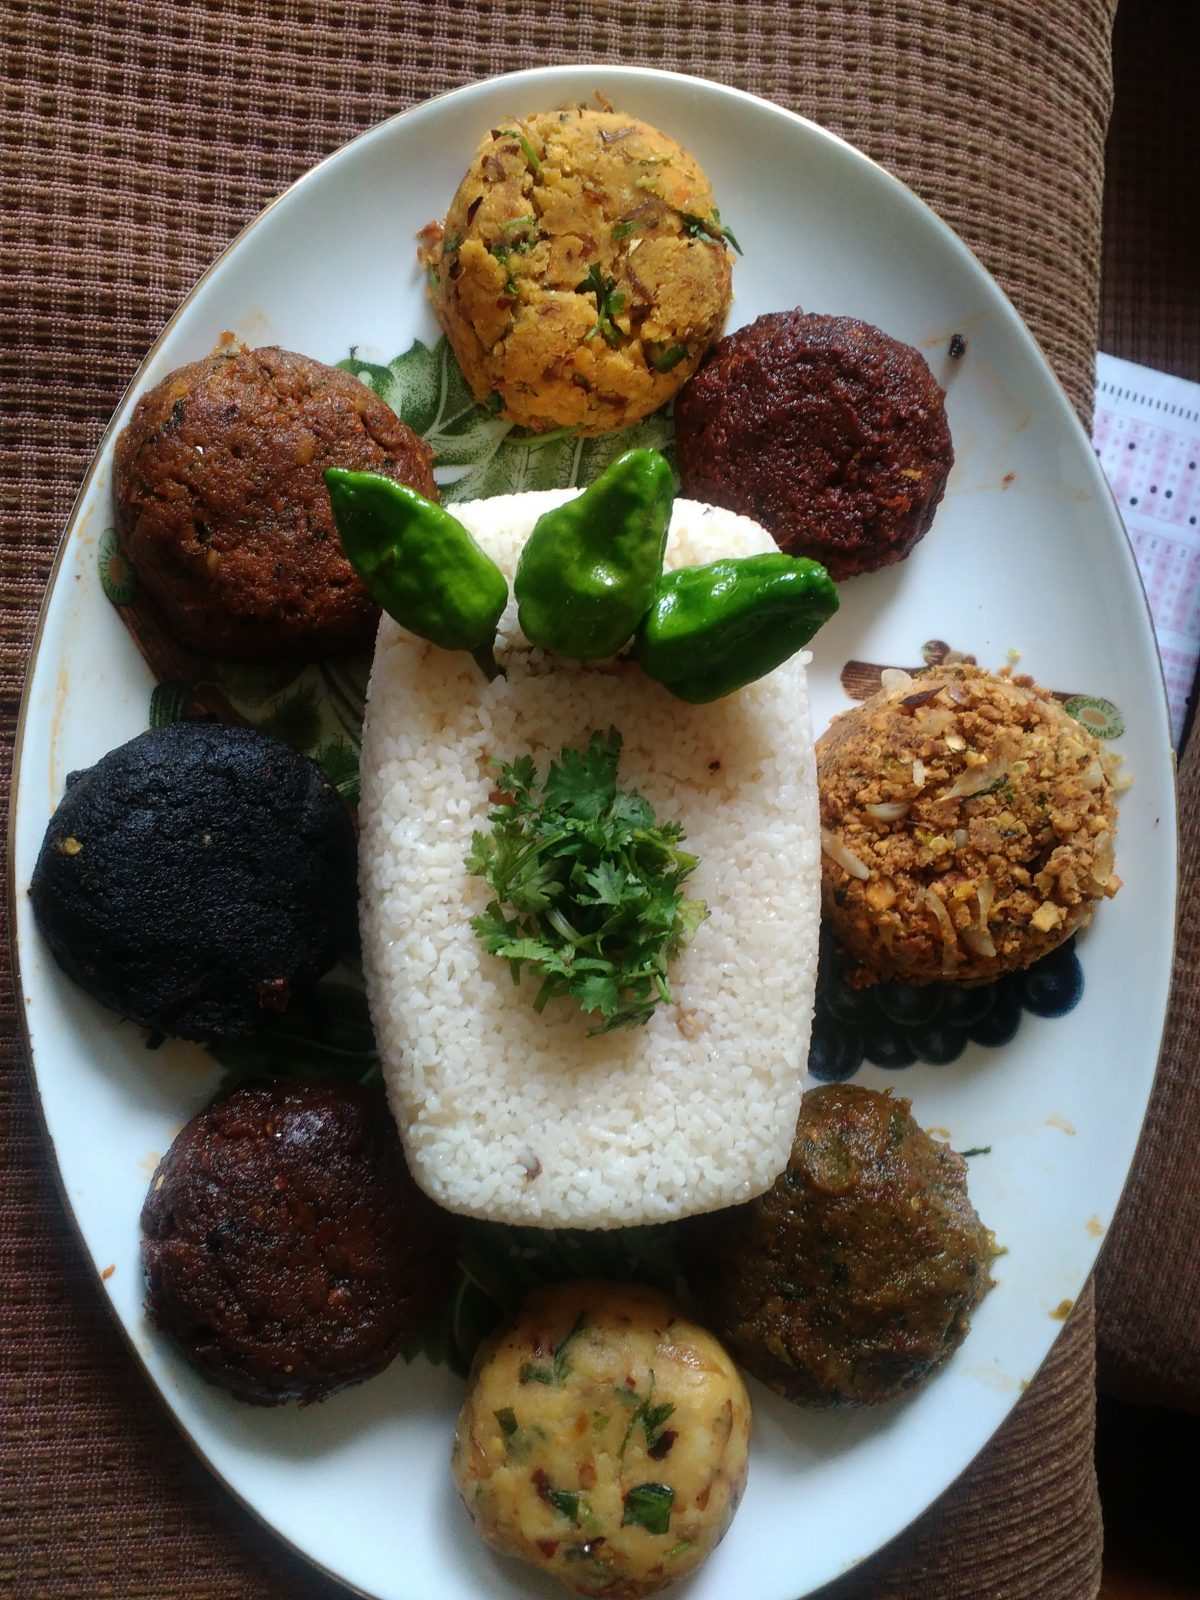 Khuder Boua and Vorta Platter from Afroza's Kitchen